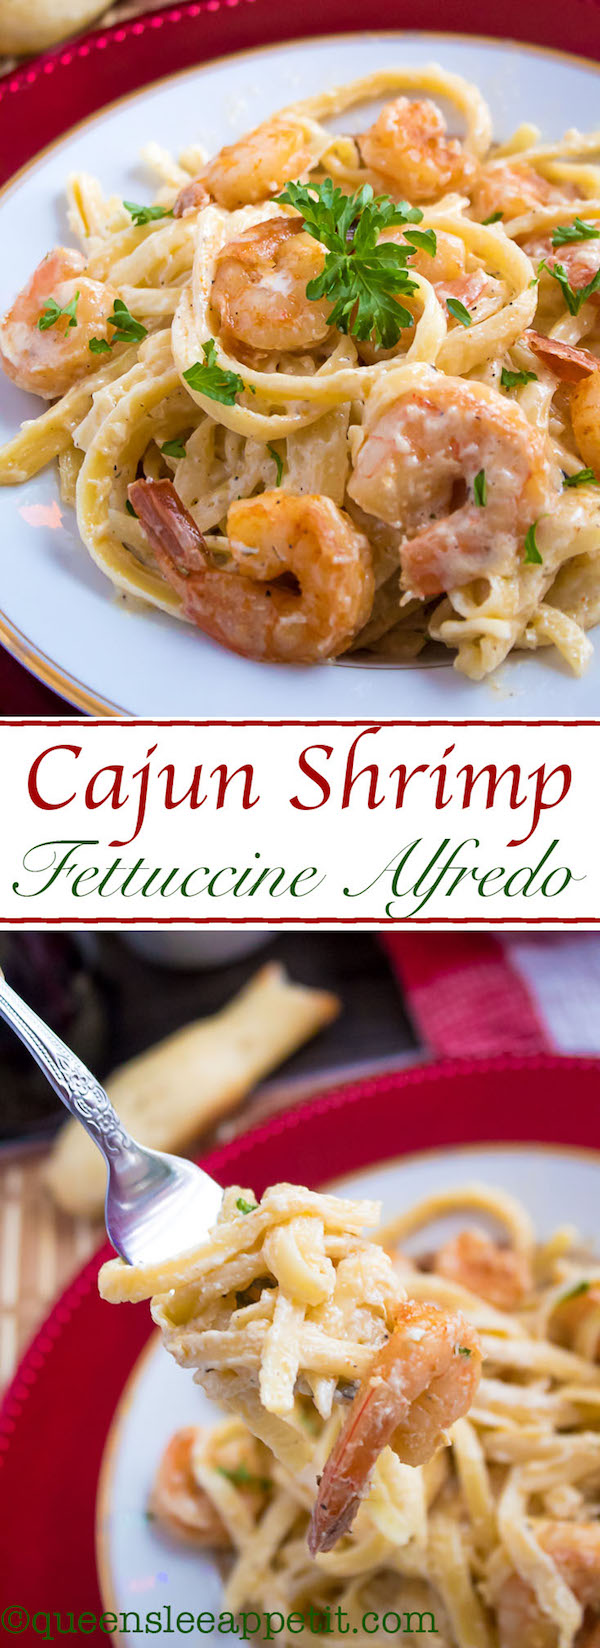 This Cajun Shrimp Fettuccine Alfredo is creamy and full of spicy Cajun flavour. Serve with a side of breadsticks for an easy and delicious pasta dinner!